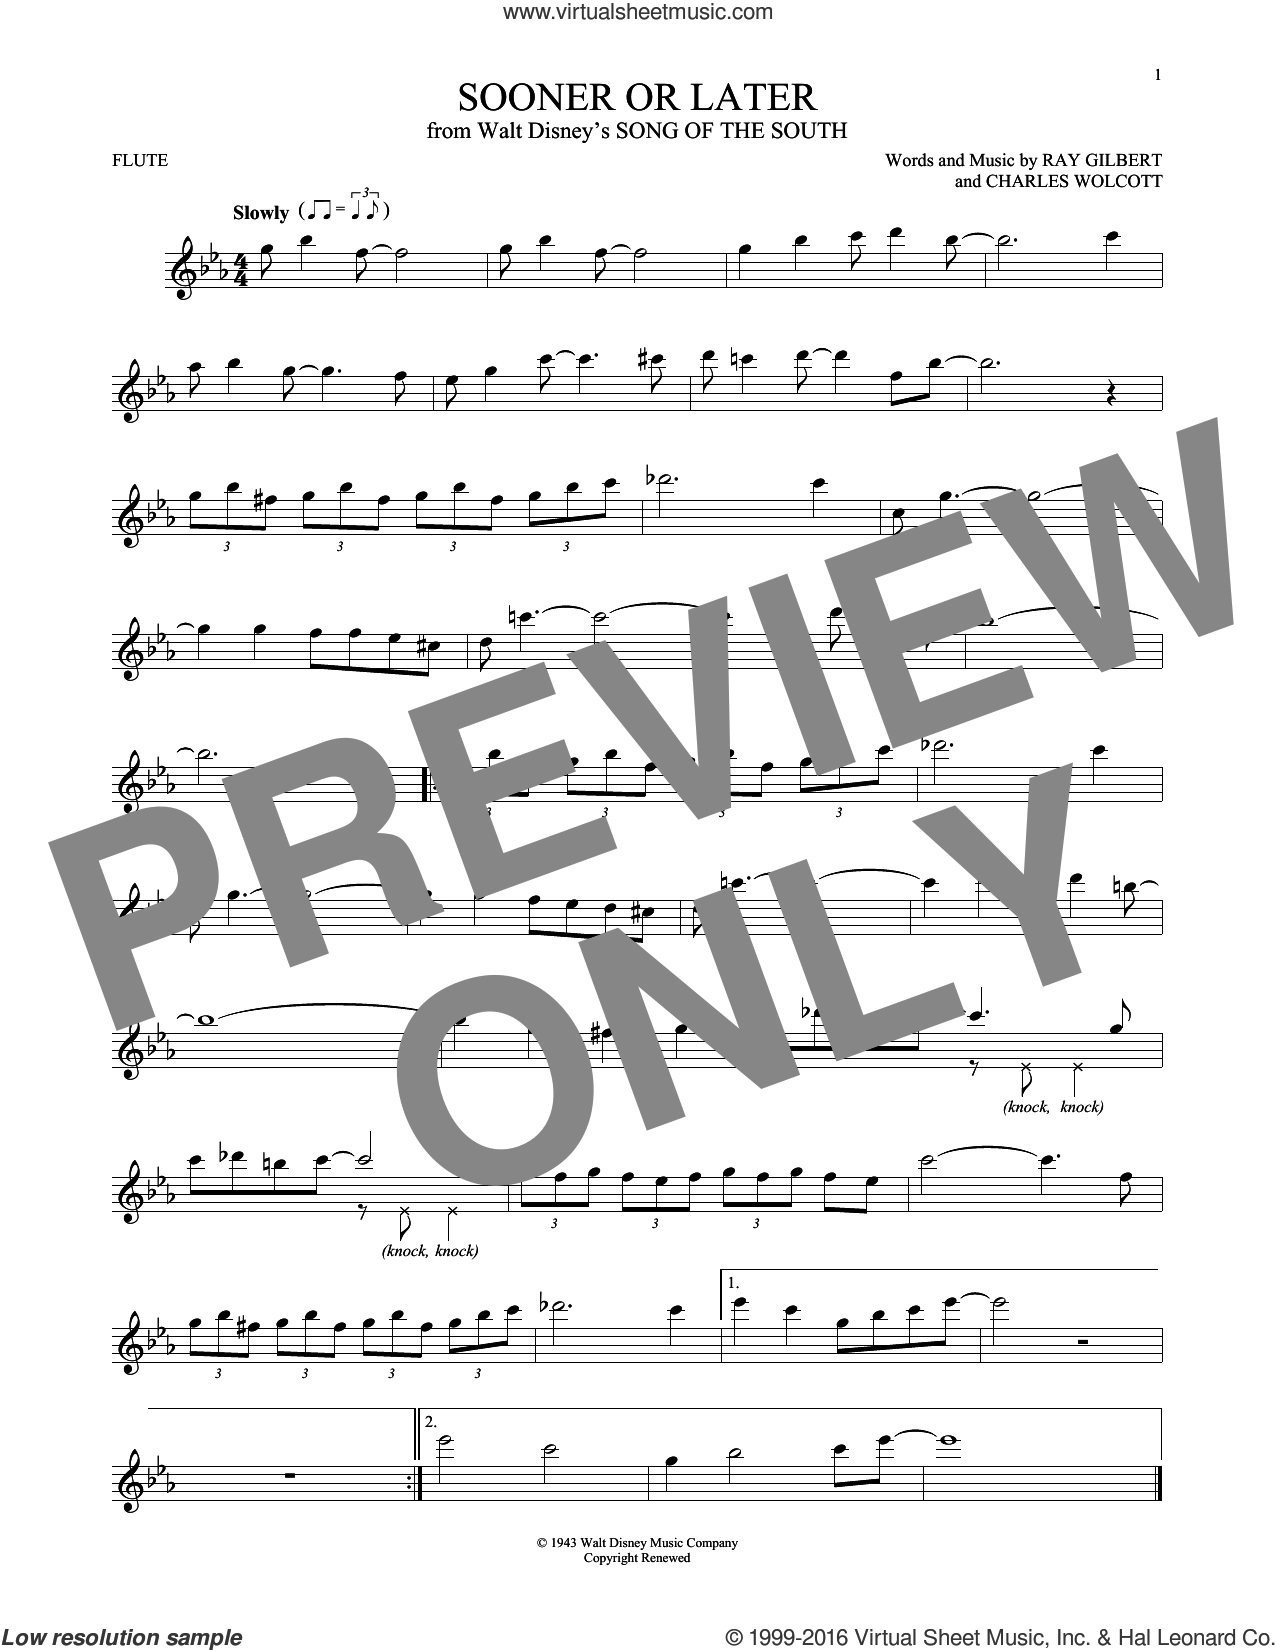 Sooner Or Later sheet music for flute solo by Ray Gilbert, Charles Wolcott and Ray Gilbert & Charles Wolcott, intermediate skill level